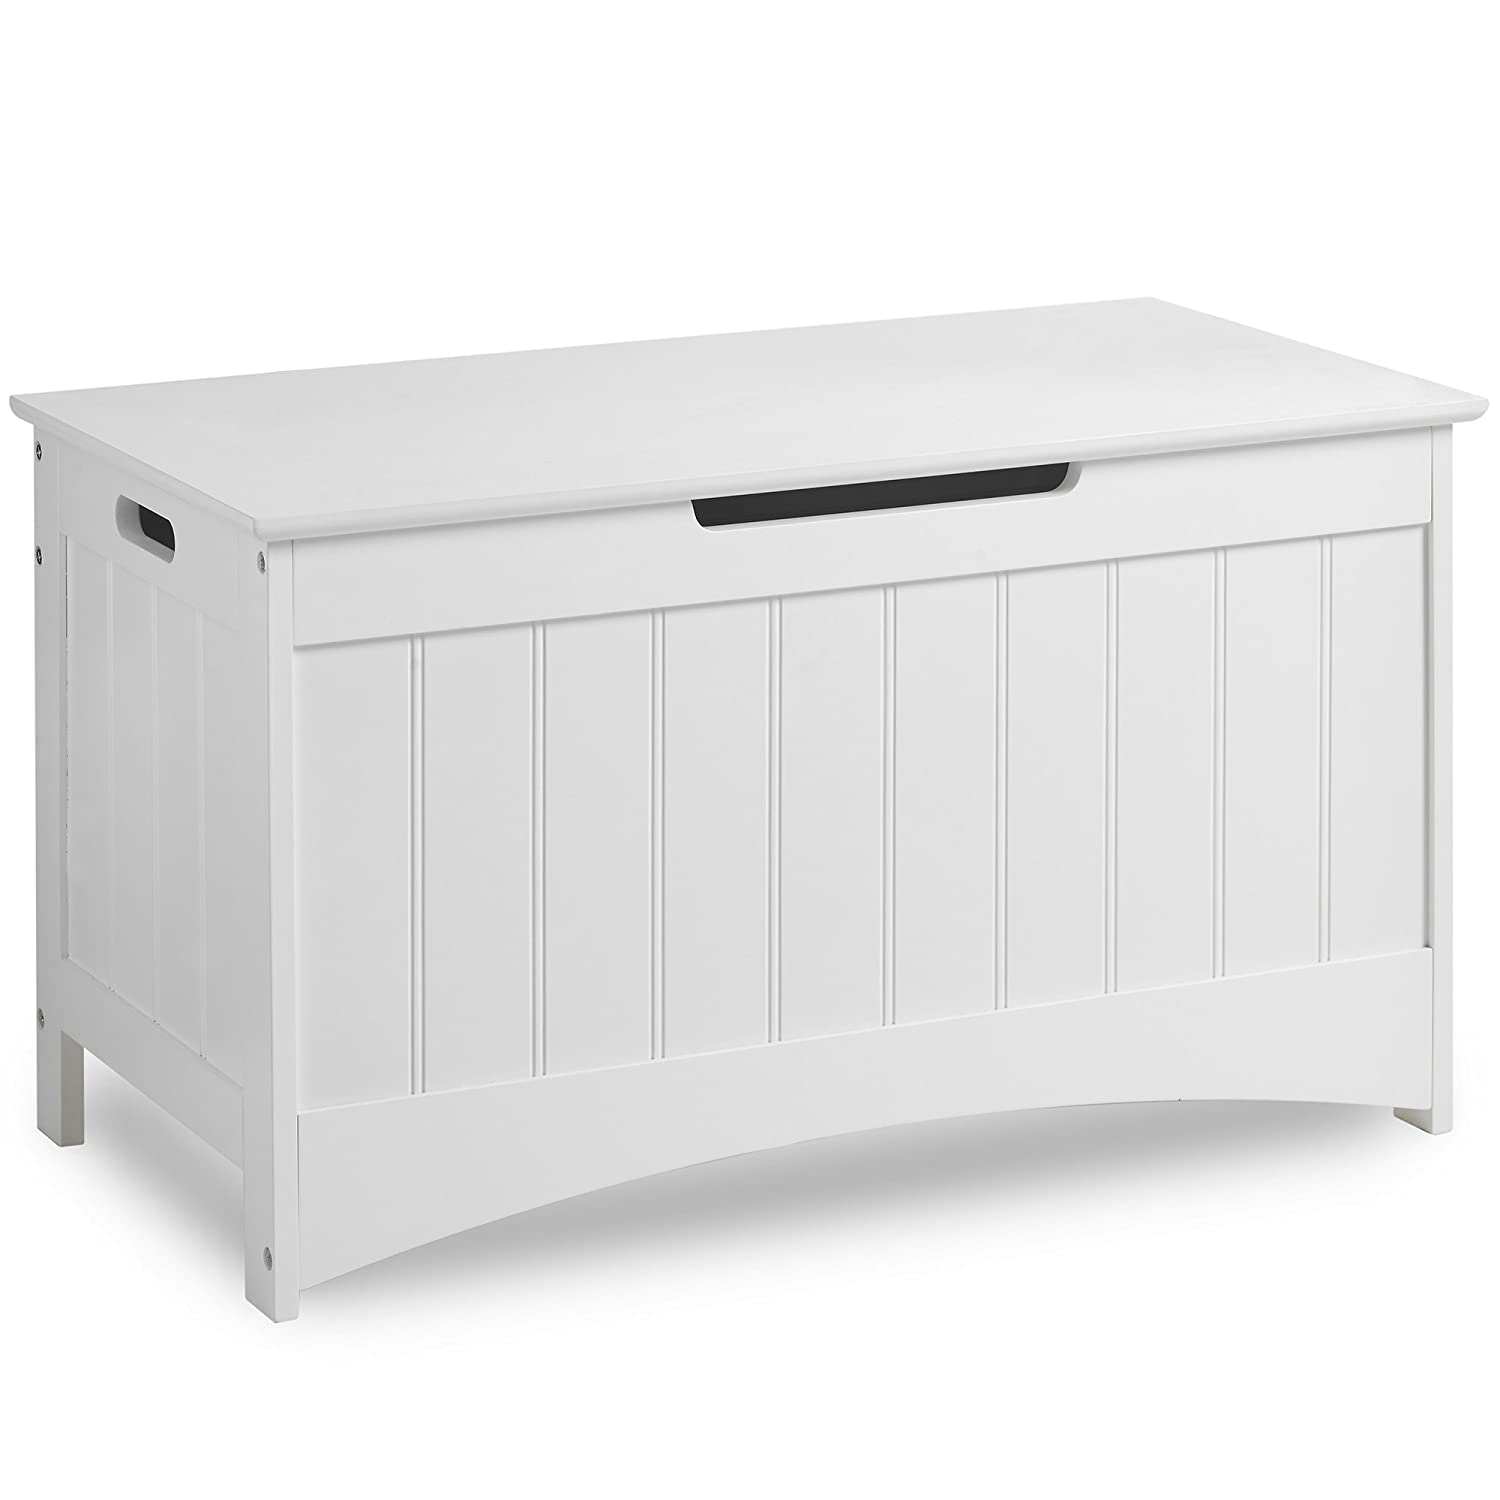 VonHaus Colonial Storage Box - Classic White Storage Chest with easy-open  operation - Bedroom Furniture